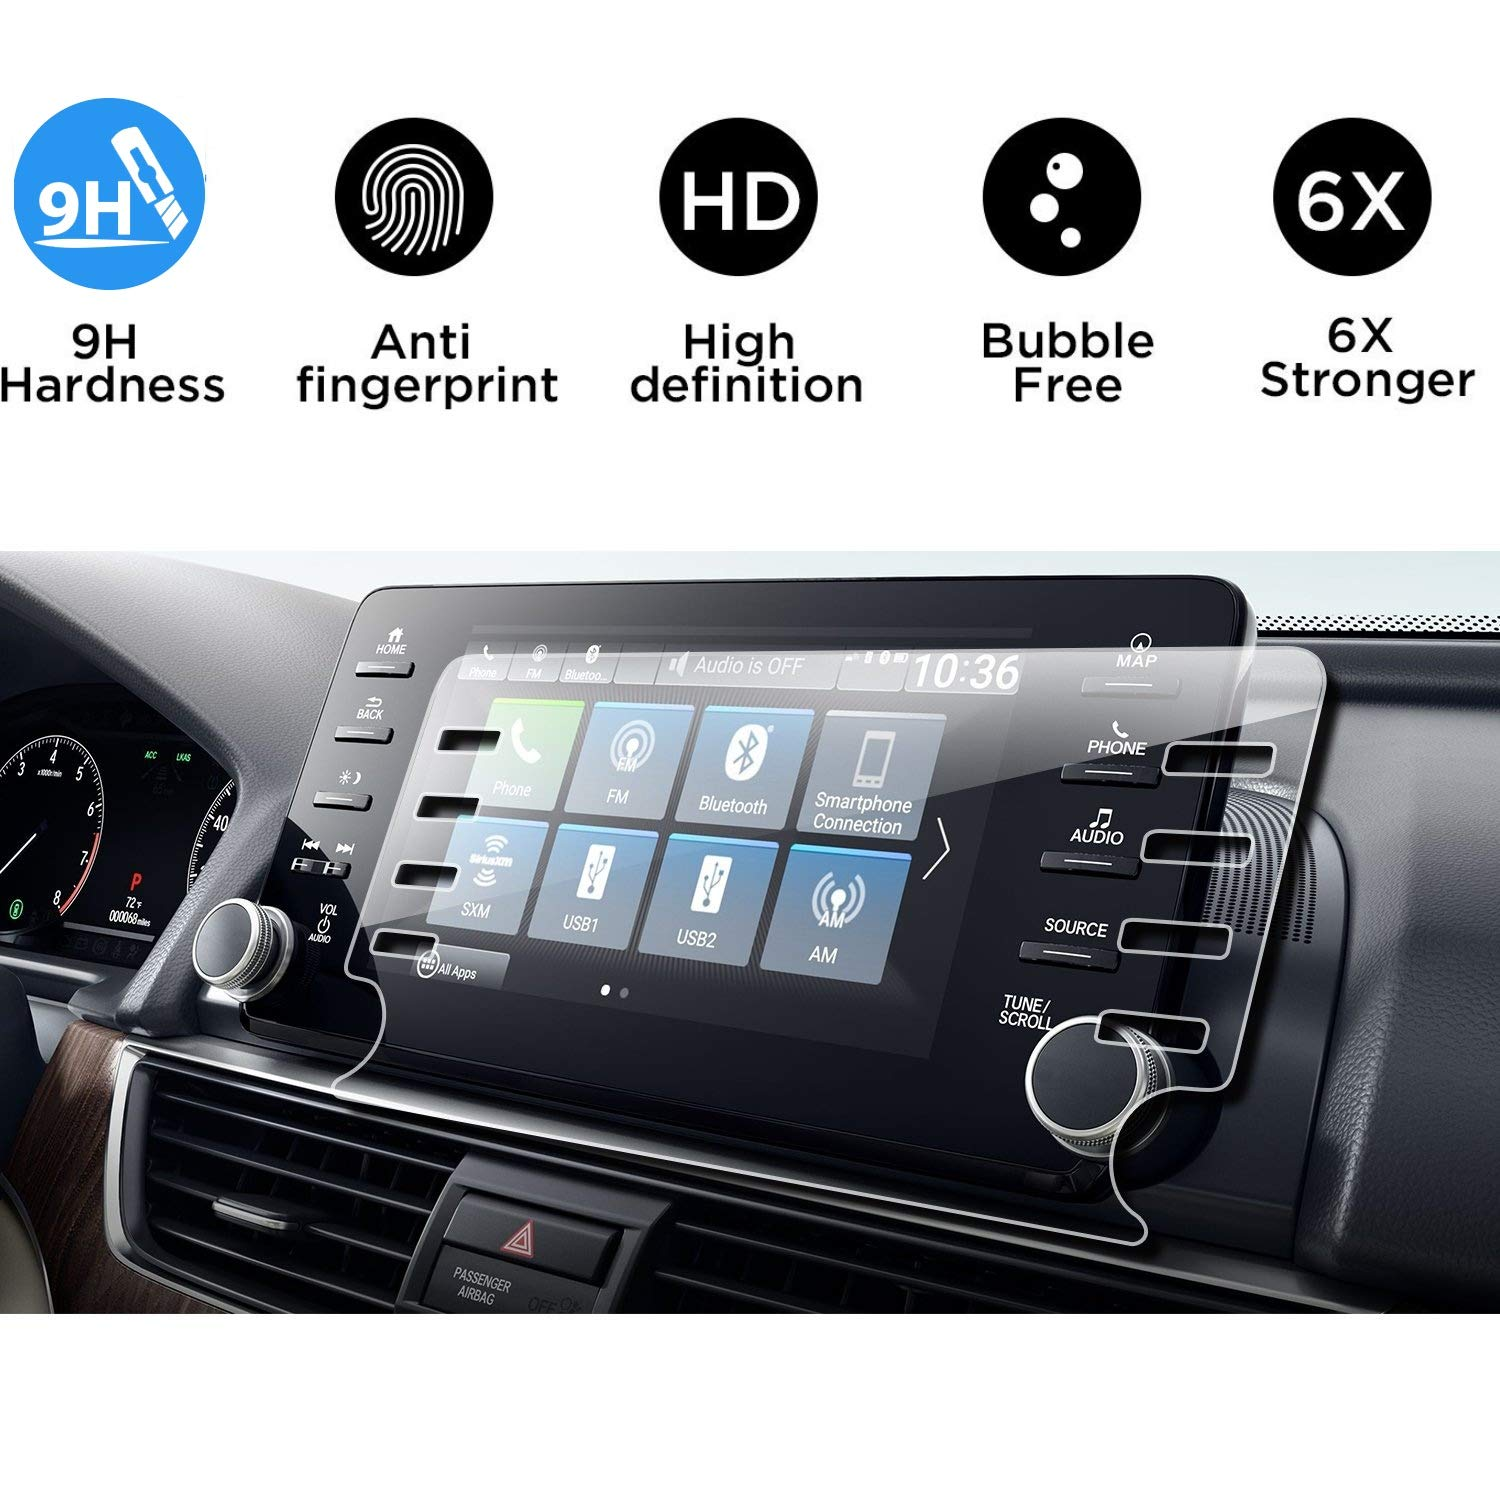 2018 2019 2020 Honda Accord EX EX-L Touring Screen Protector,Tempered Glass Screen Protector for Honda Accord,Flyingchan,9H Hardness,High Definition,Honda 8'' Car Center Touch Screen Protector